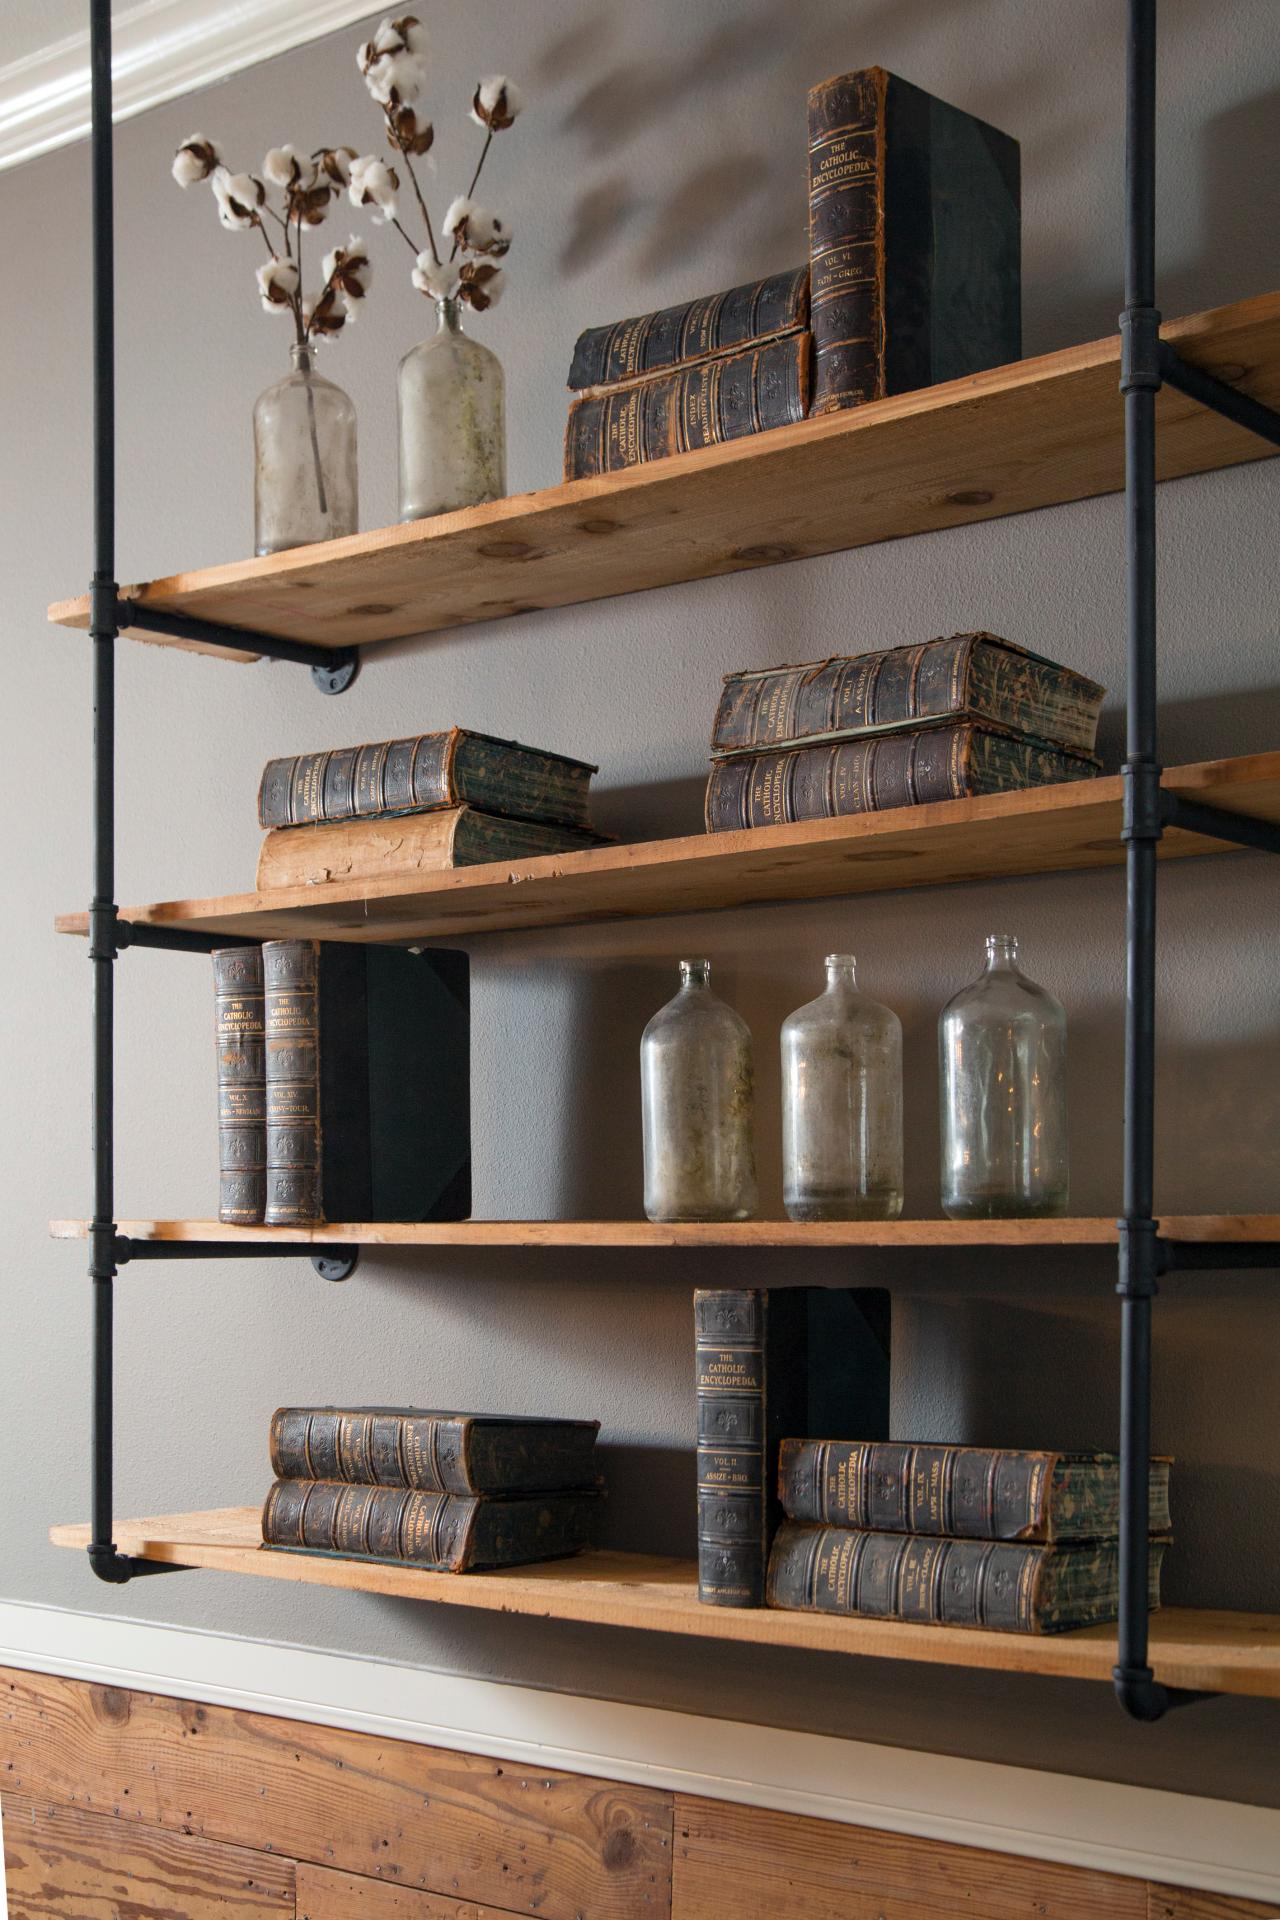 Make Your Bookshelves Shelfie-worthy With Inspiration From Fixer